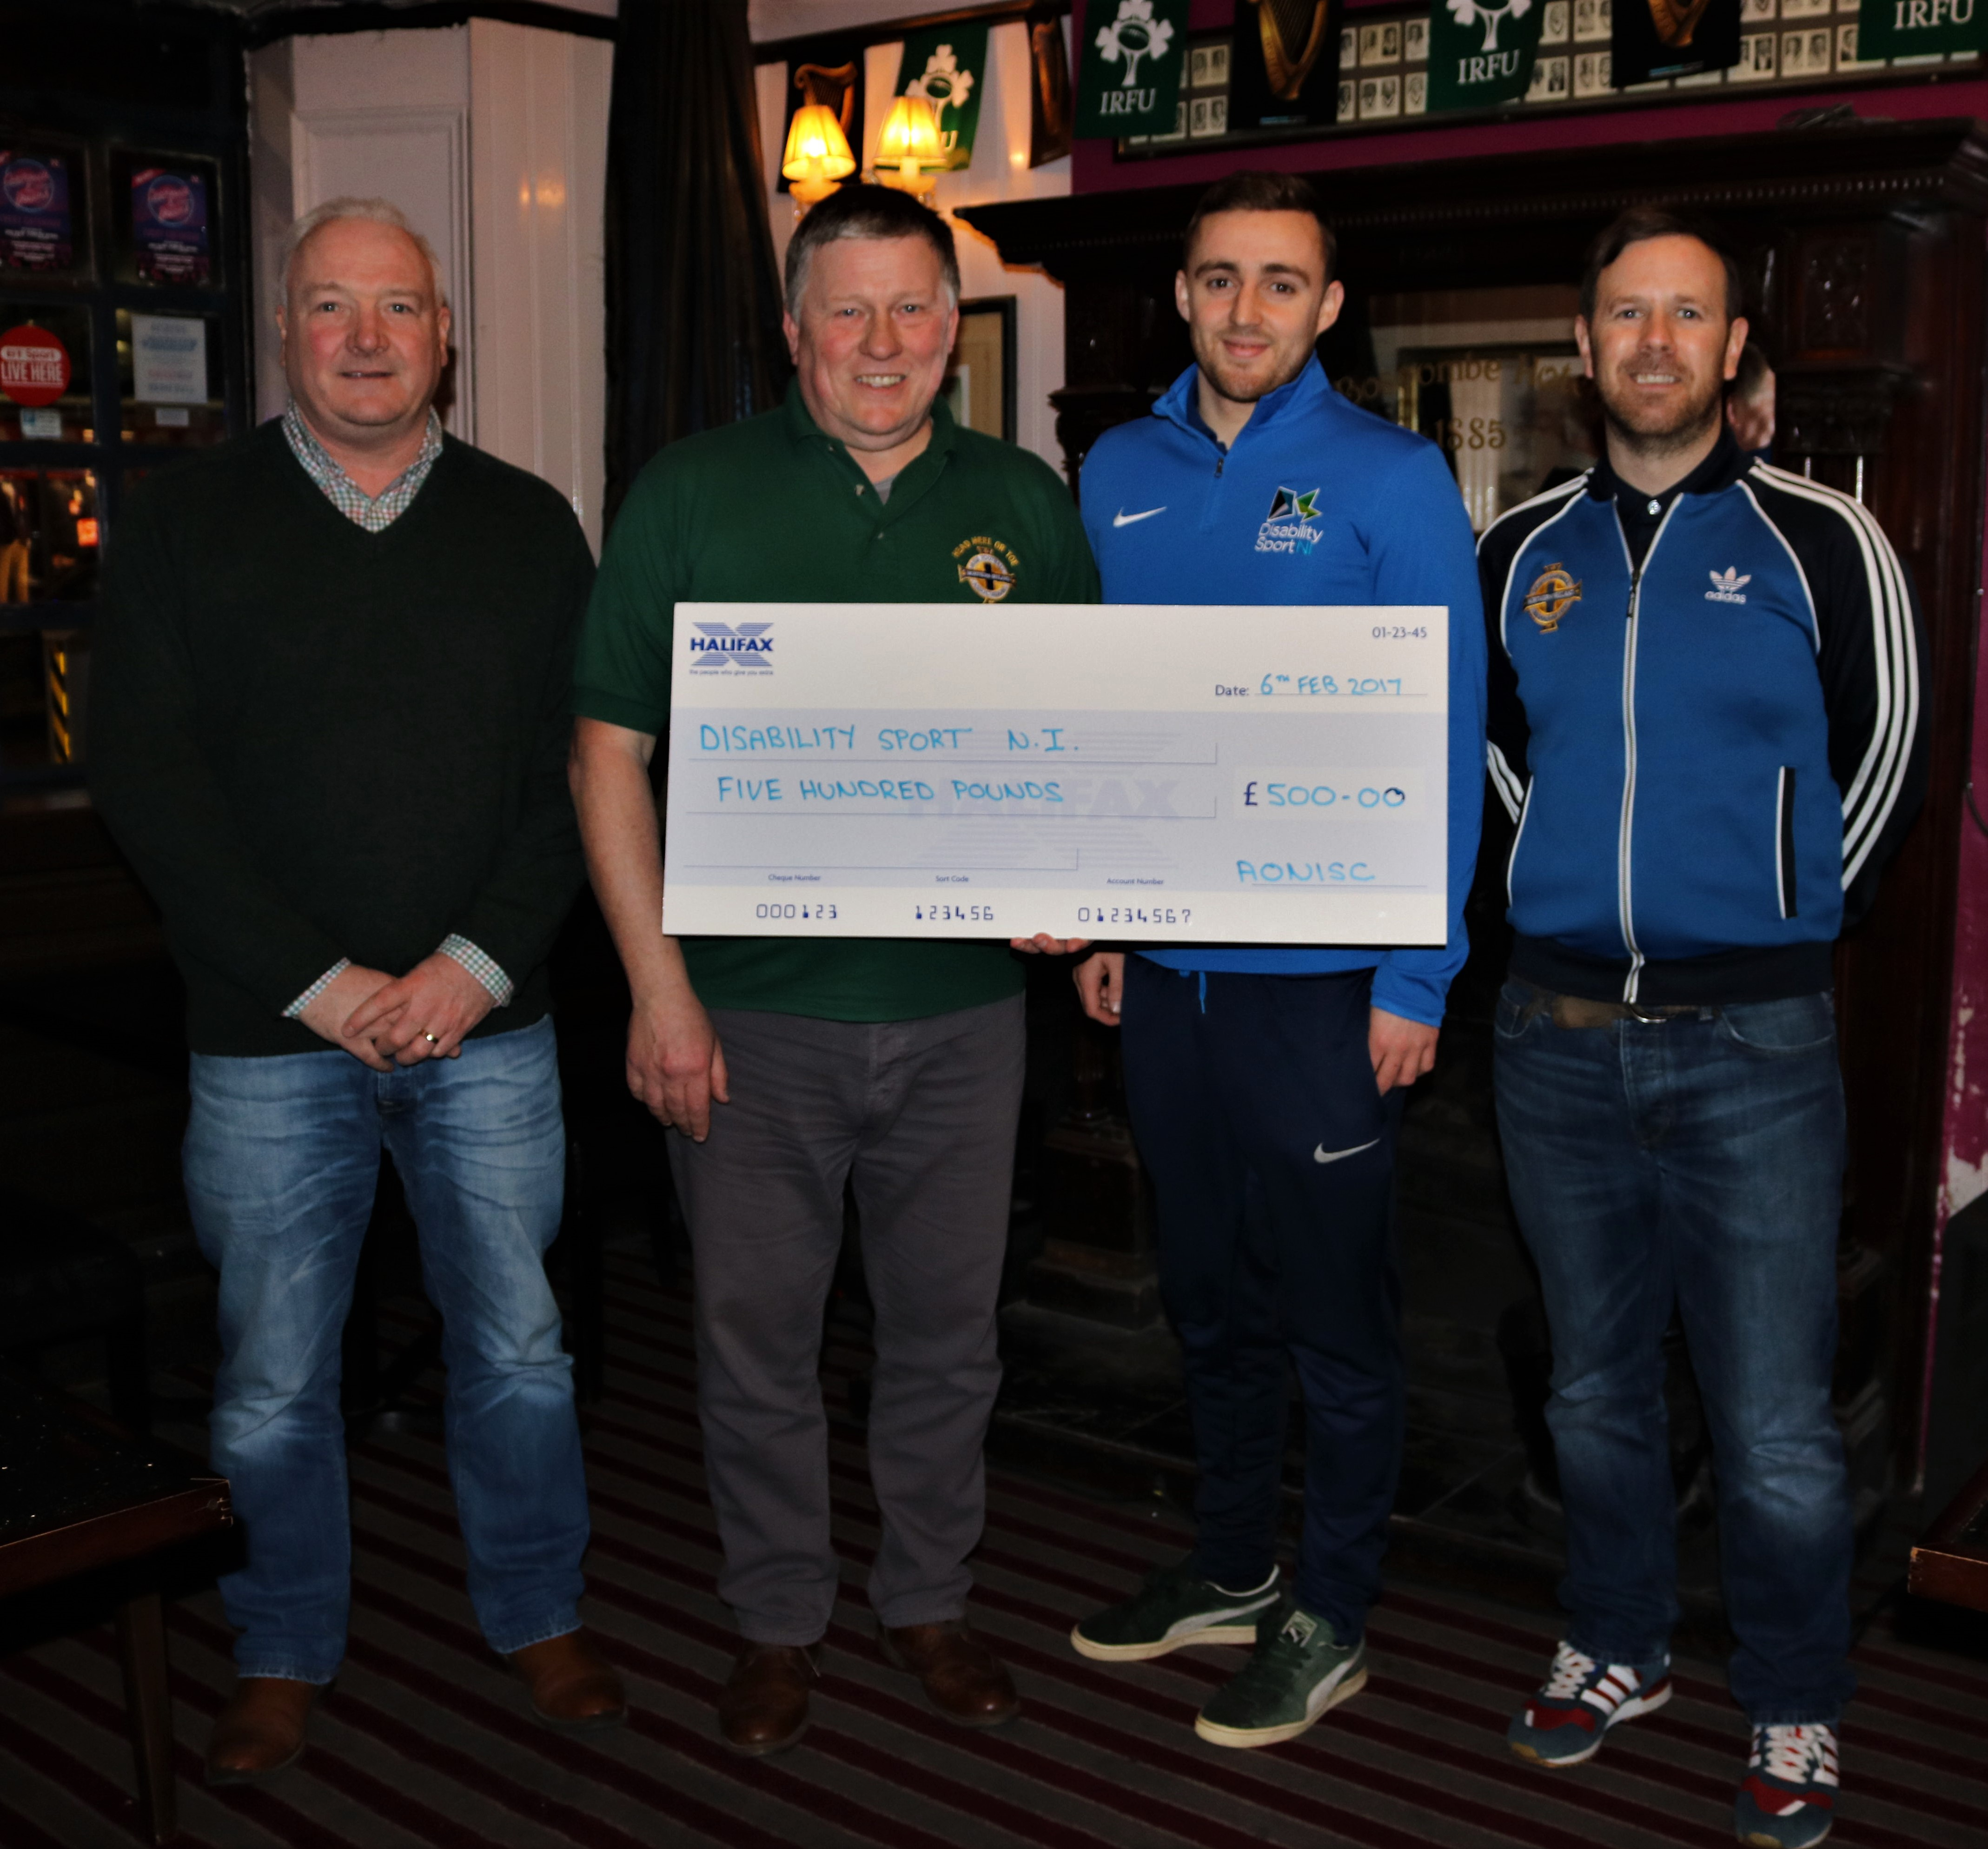 Alan Ferris, Jim Spratt and Stuart Mellon present Mark Montgomery with a large cheque